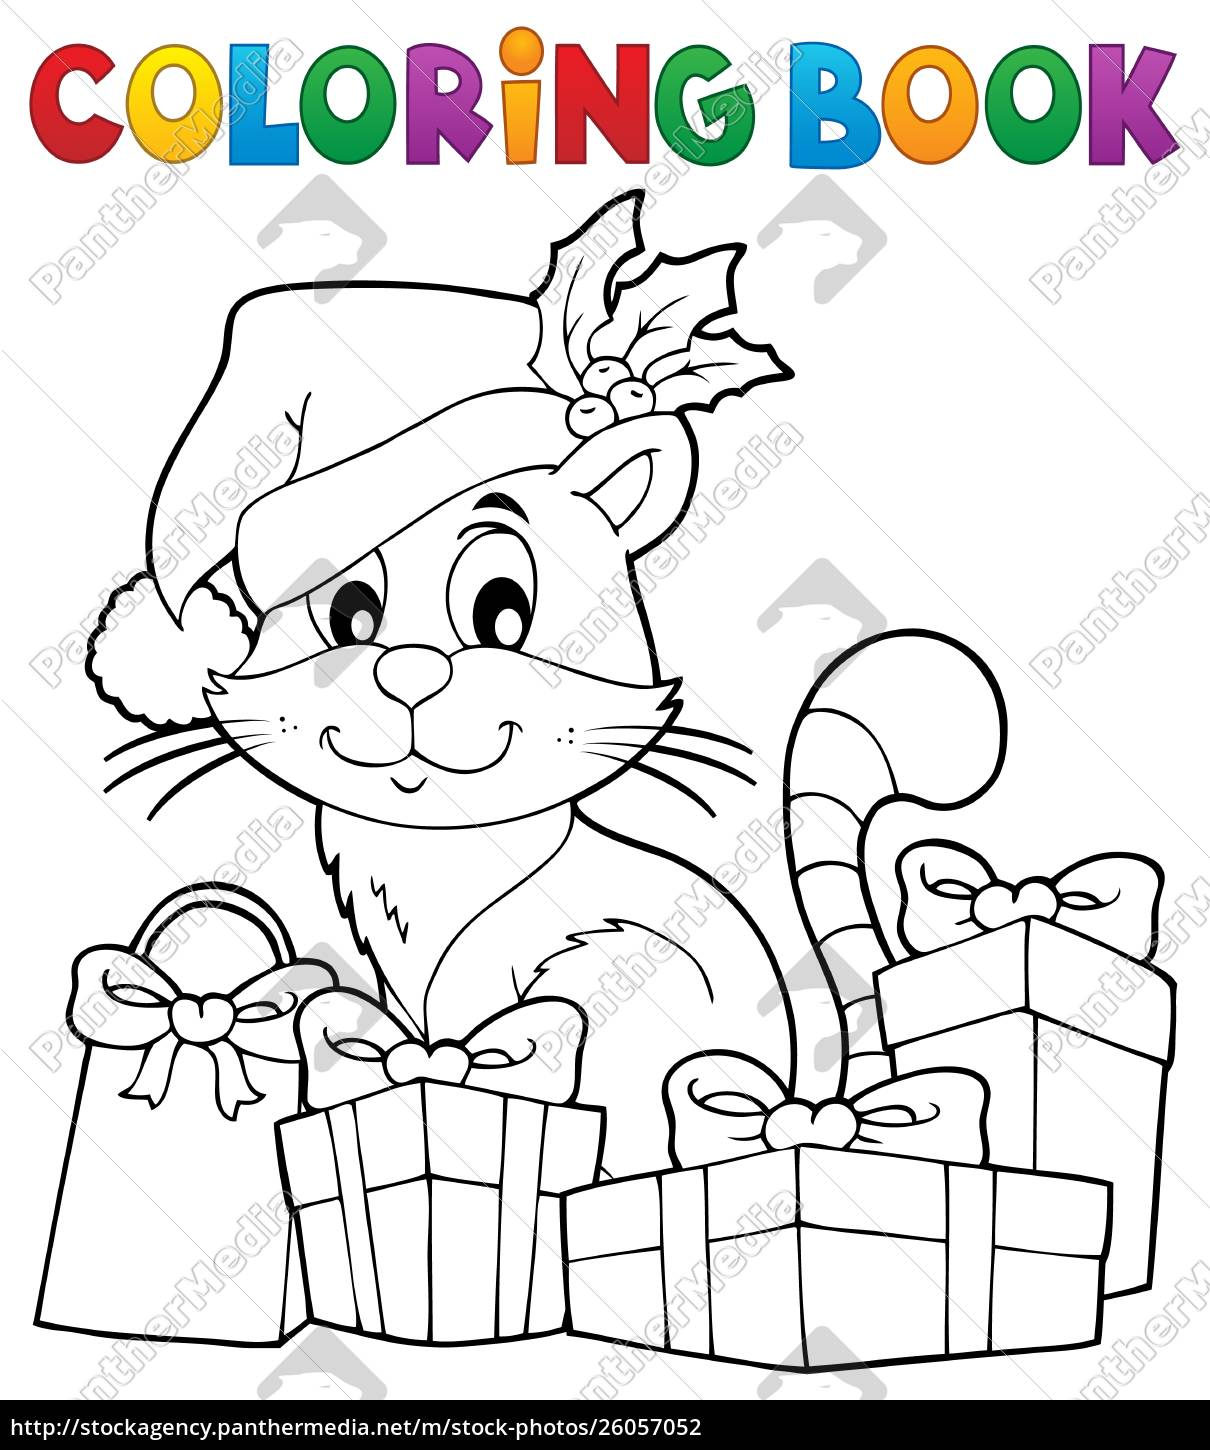 Coloring Book Christmas Cat Theme 3 Royalty Free Photo 26057052 Panthermedia Stock Agency